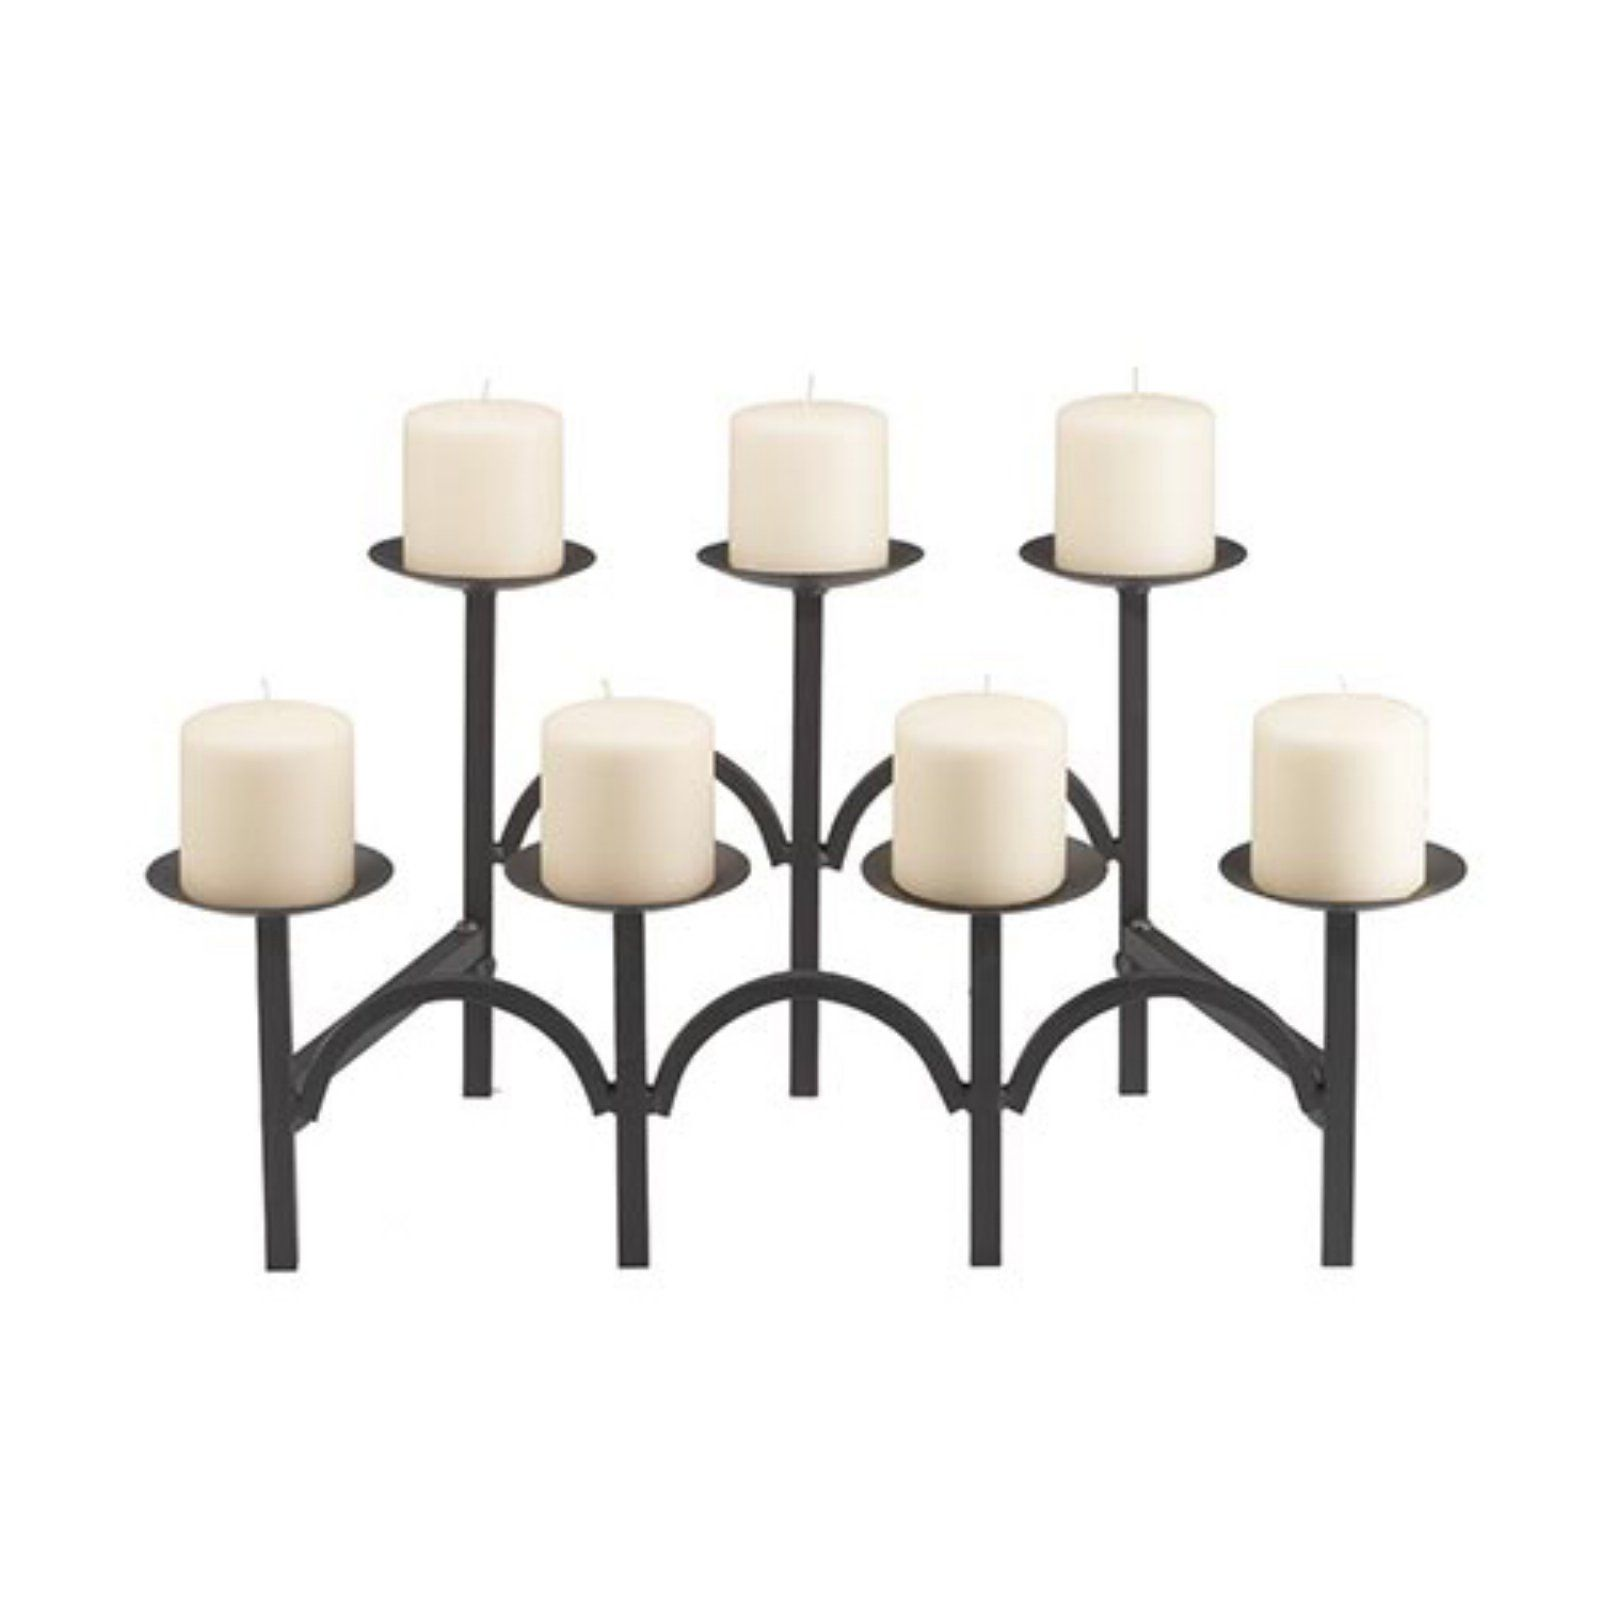 Awesome Minuteman International Two Tier 7 Candle Black Fireplace Interior Design Ideas Gentotryabchikinfo